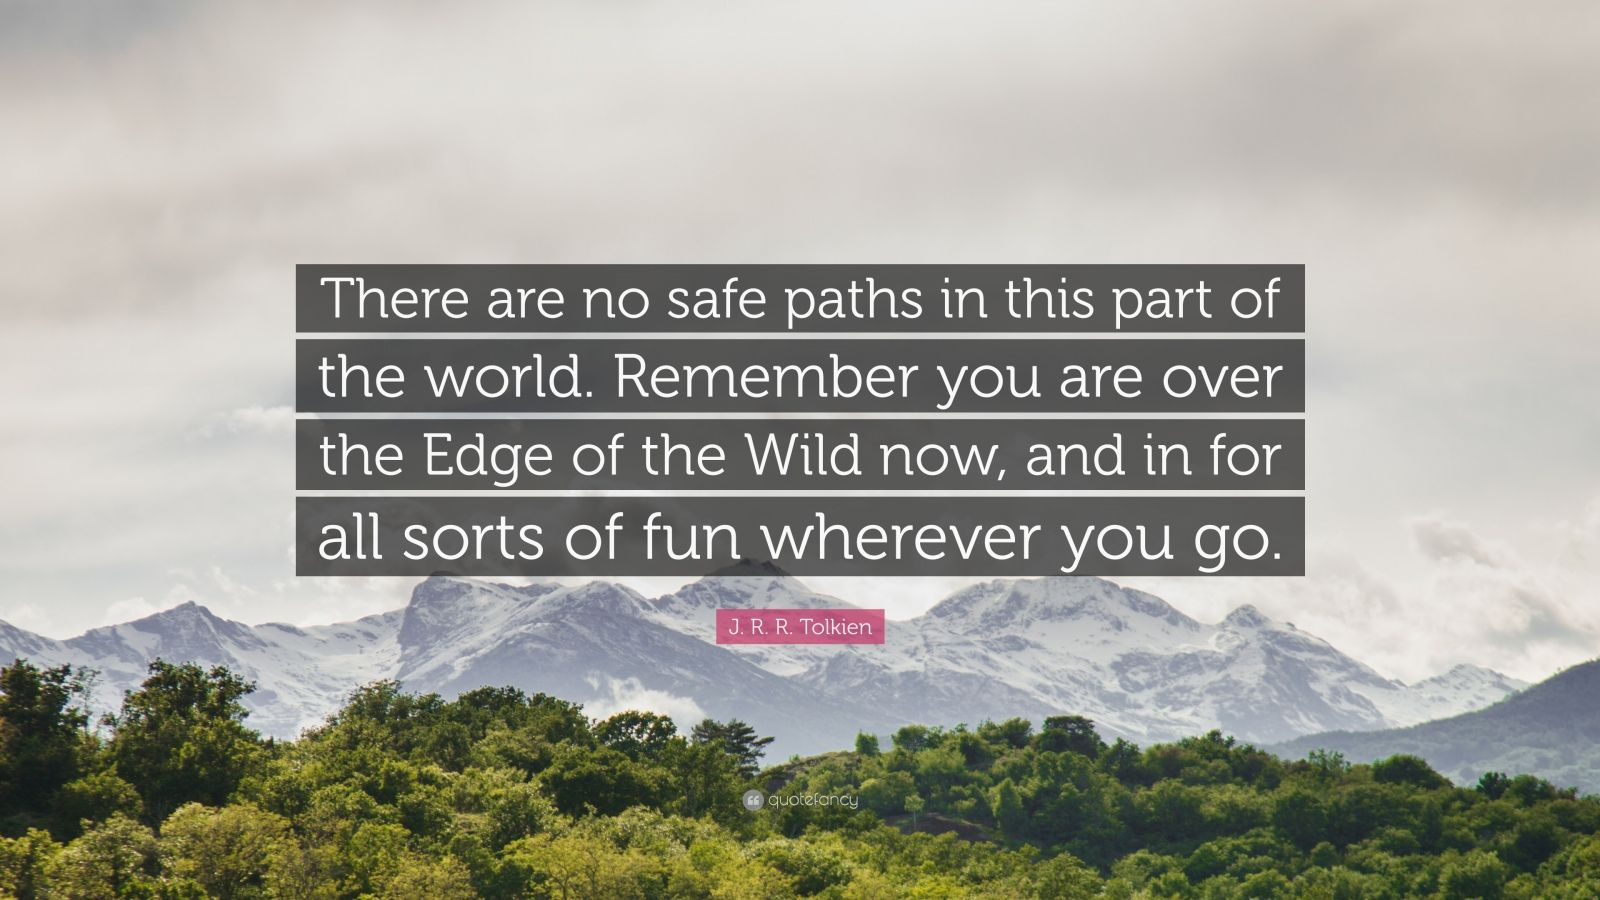 Into The Wild Book Quotes Jrrtolkien Quotes 100 Wallpapers  Quotefancy